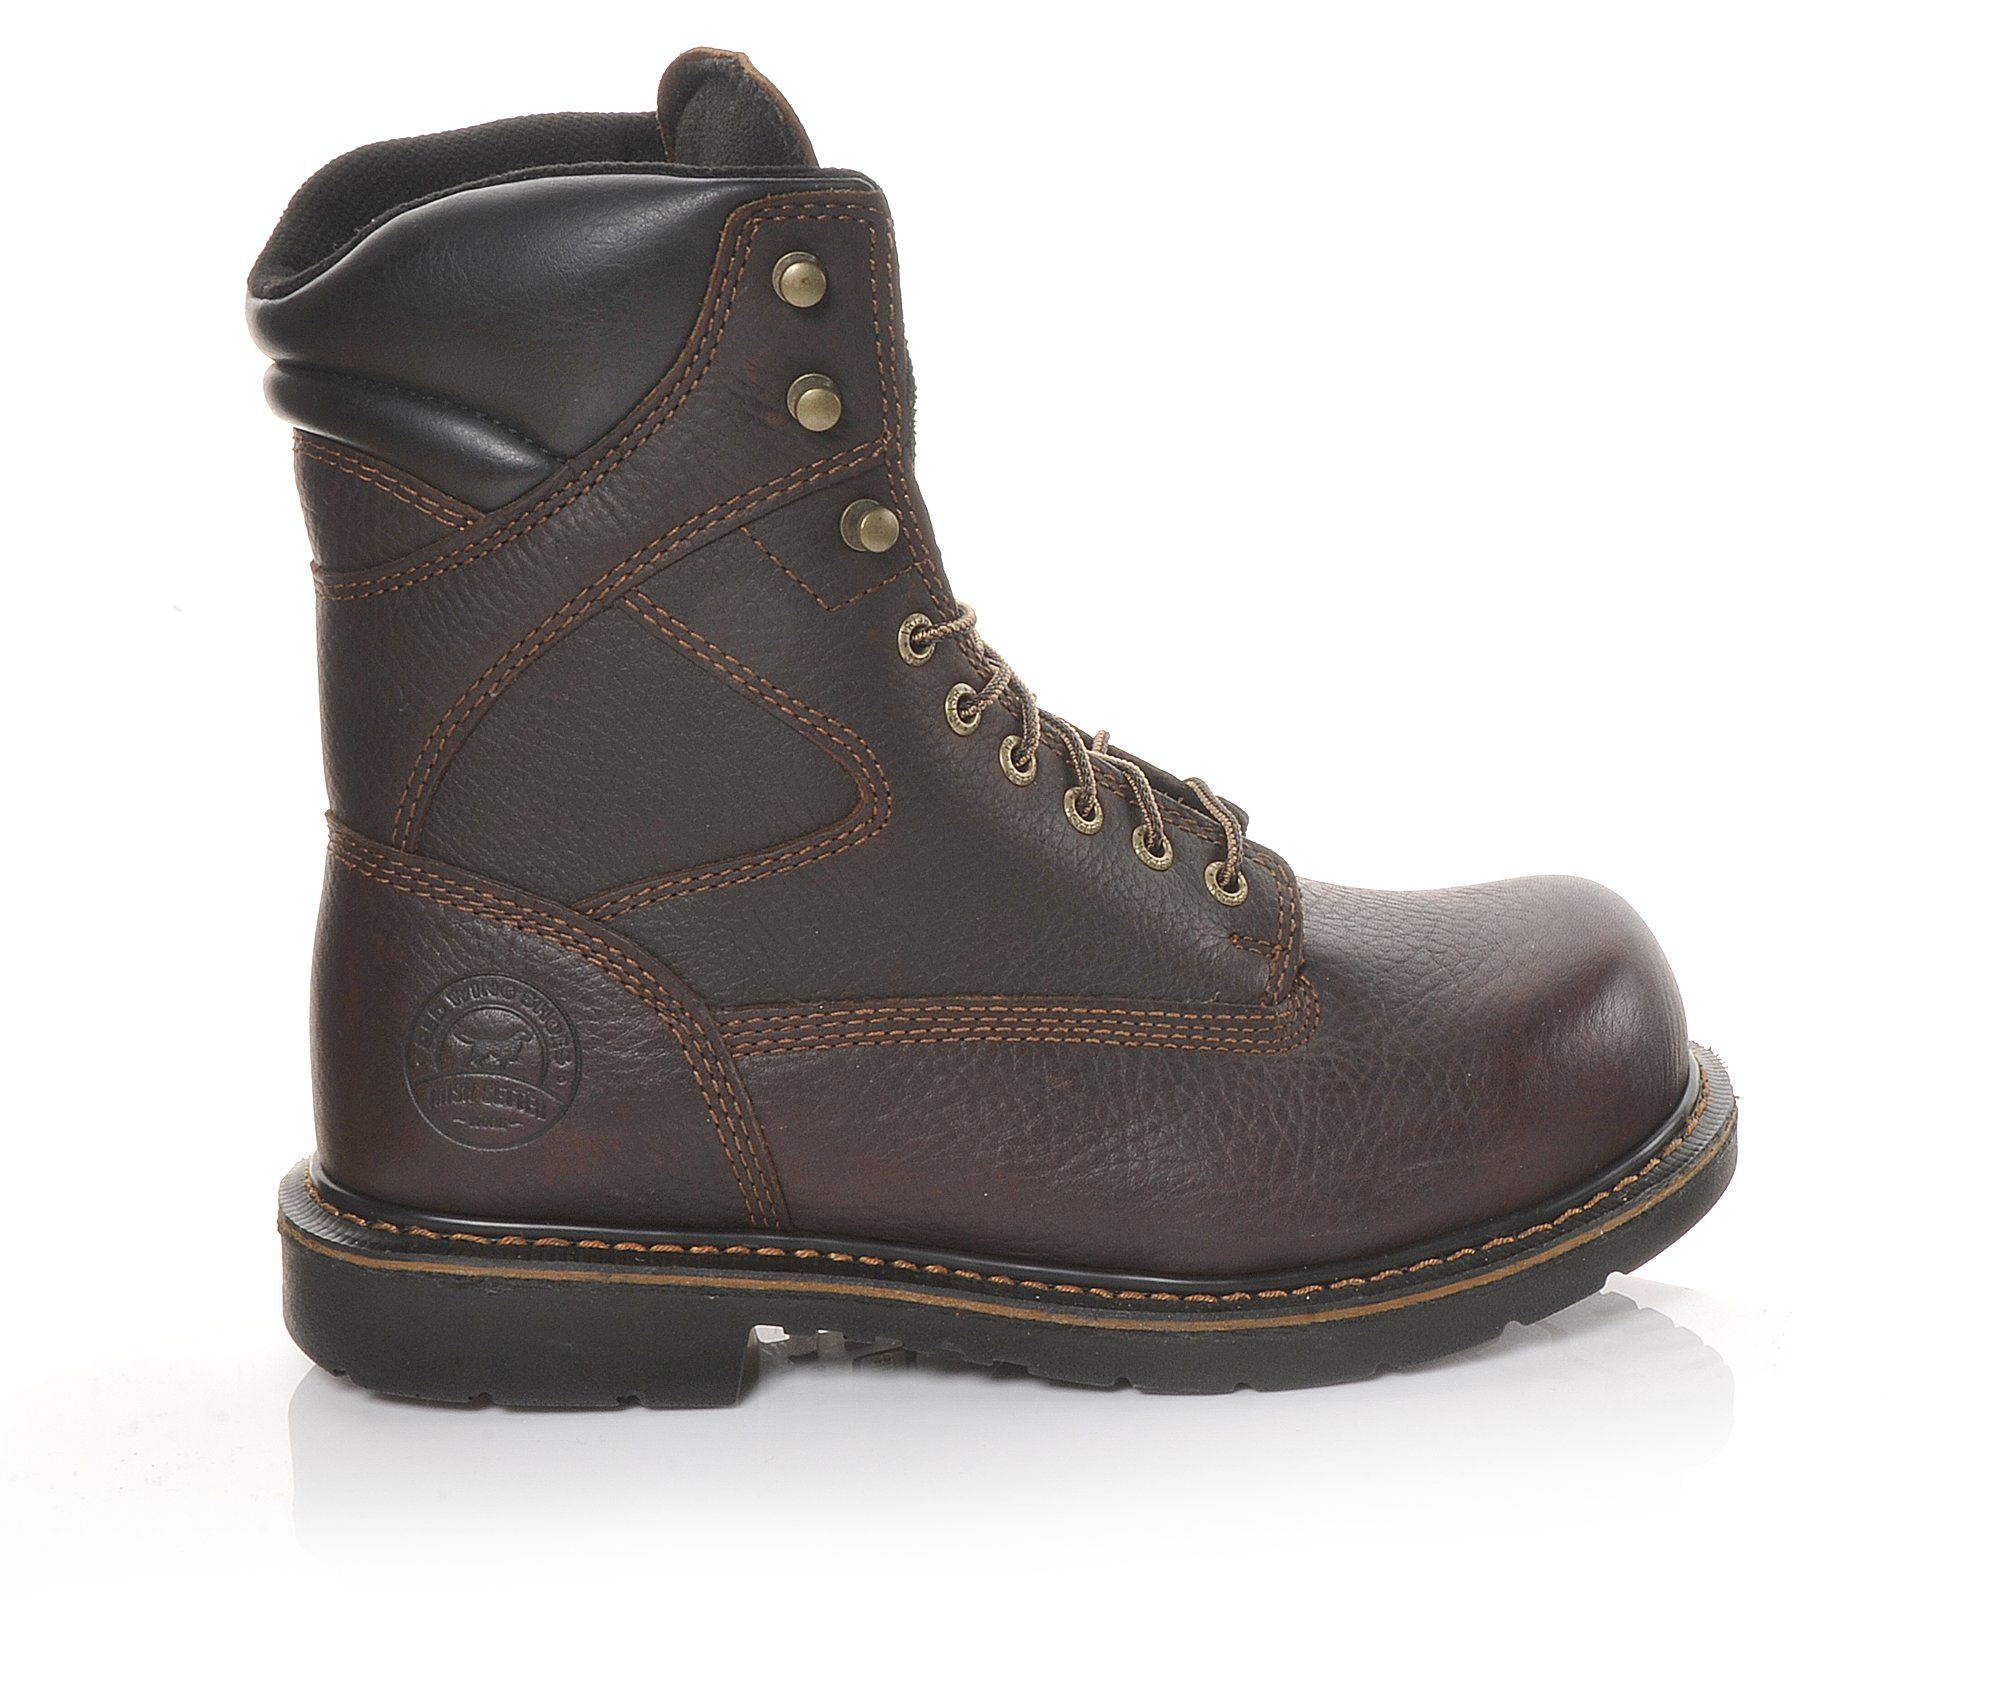 Red Wing-Irish Setter 83824 King Toe 8 Inch Steel Toe Men's Boots (Brown Leather)